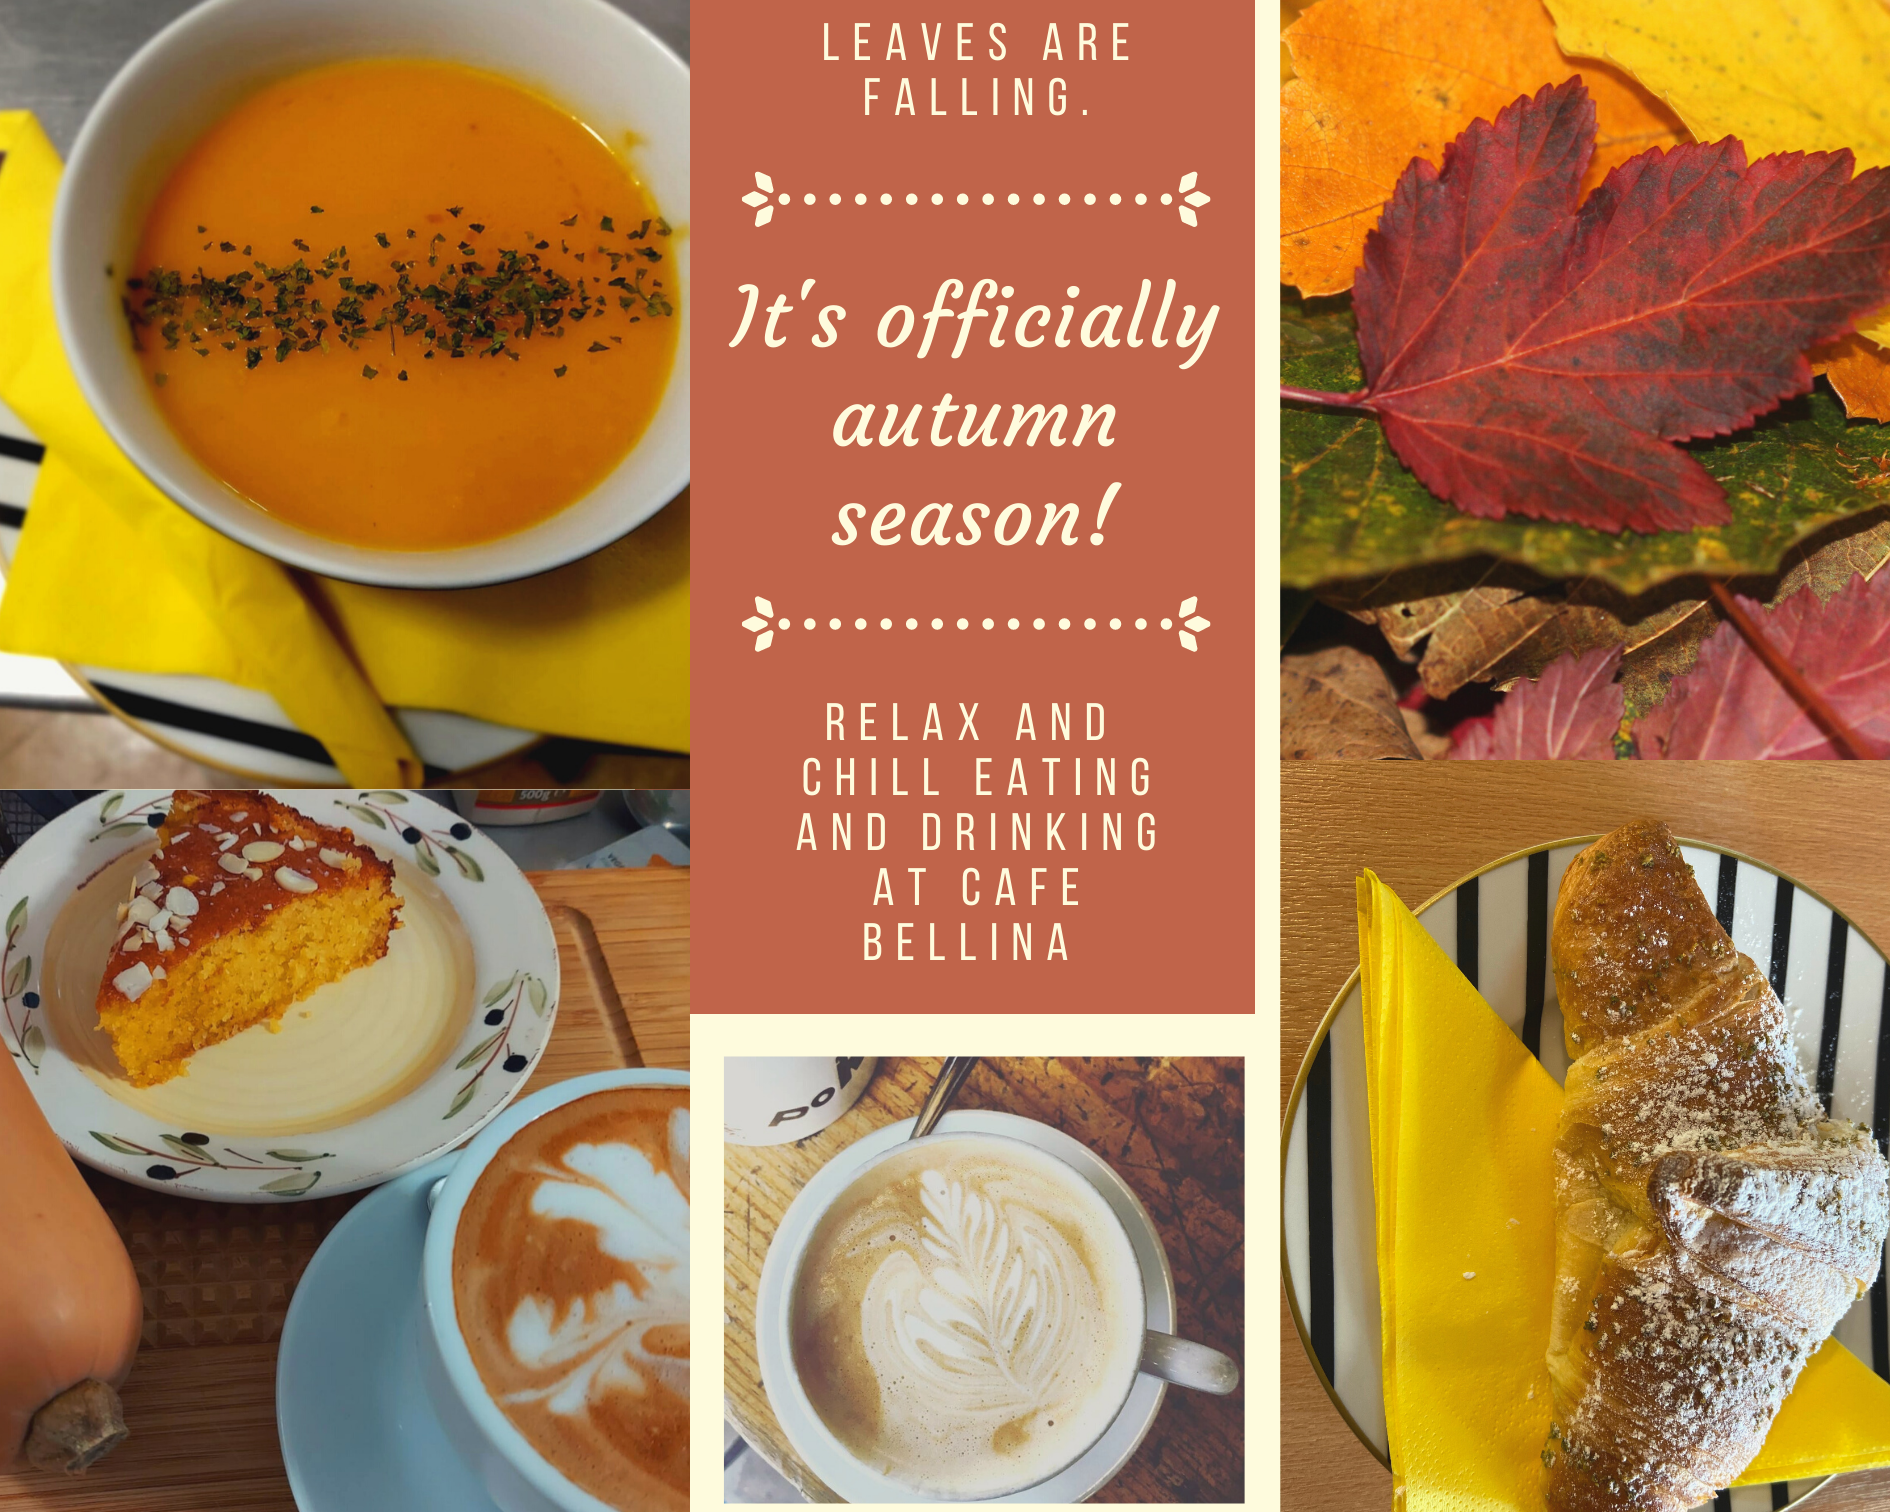 It's officially autumn season!